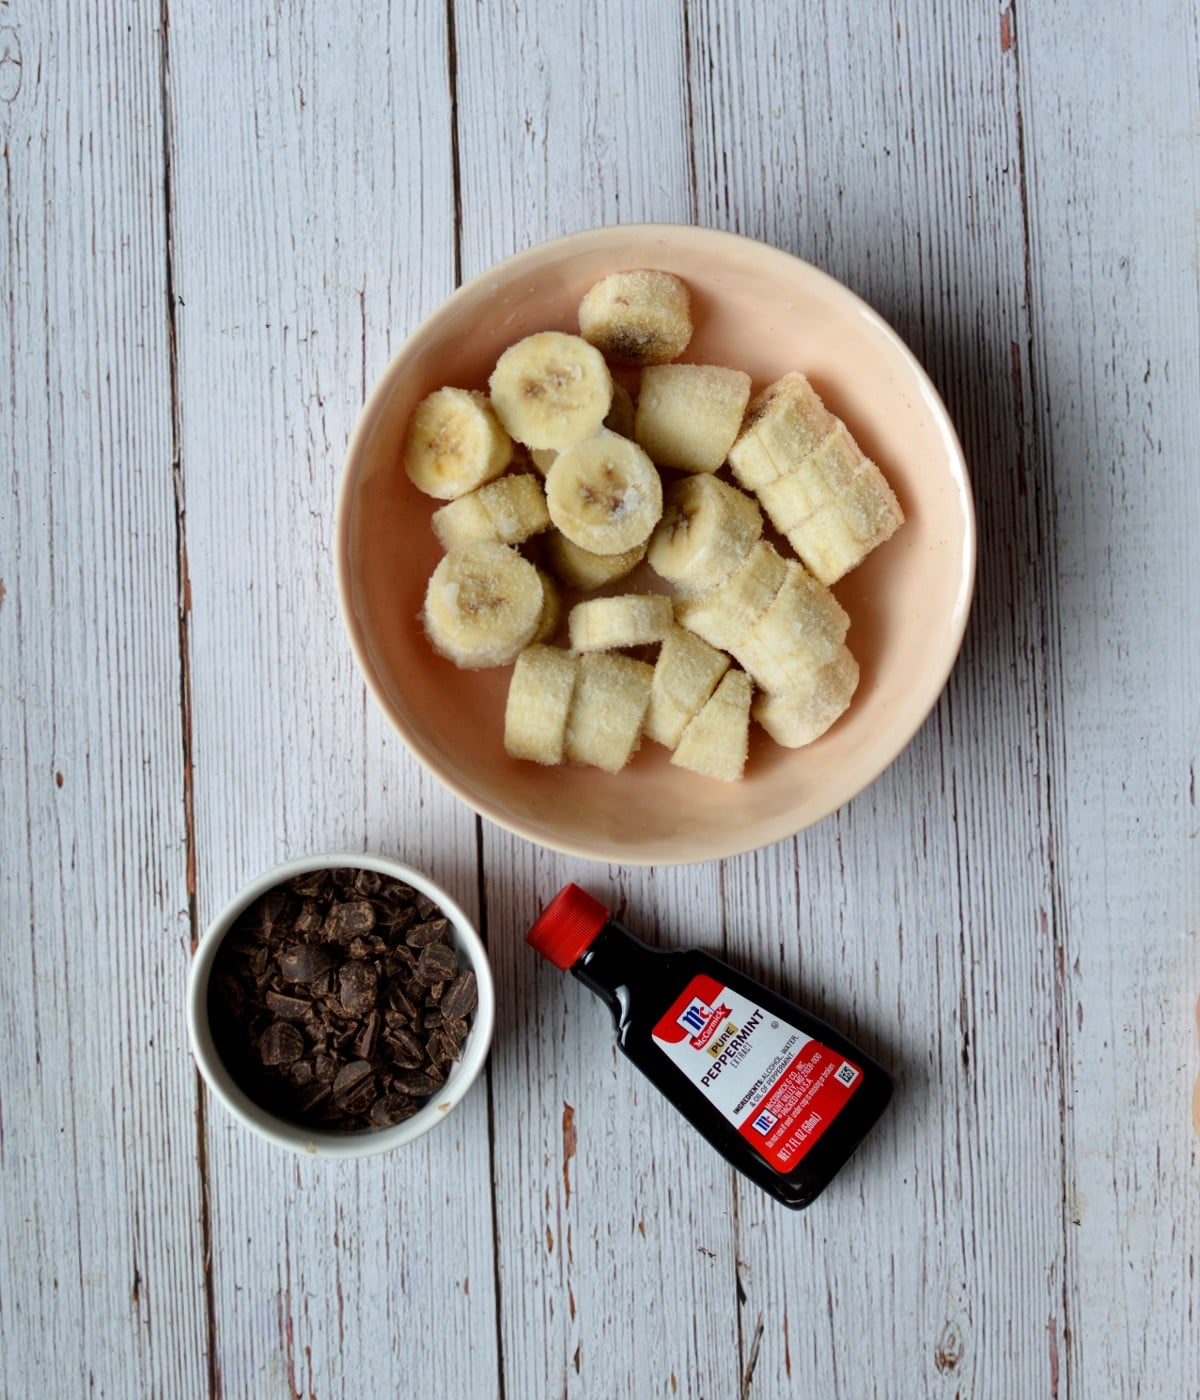 bananas, chocolate chips, and peppermint